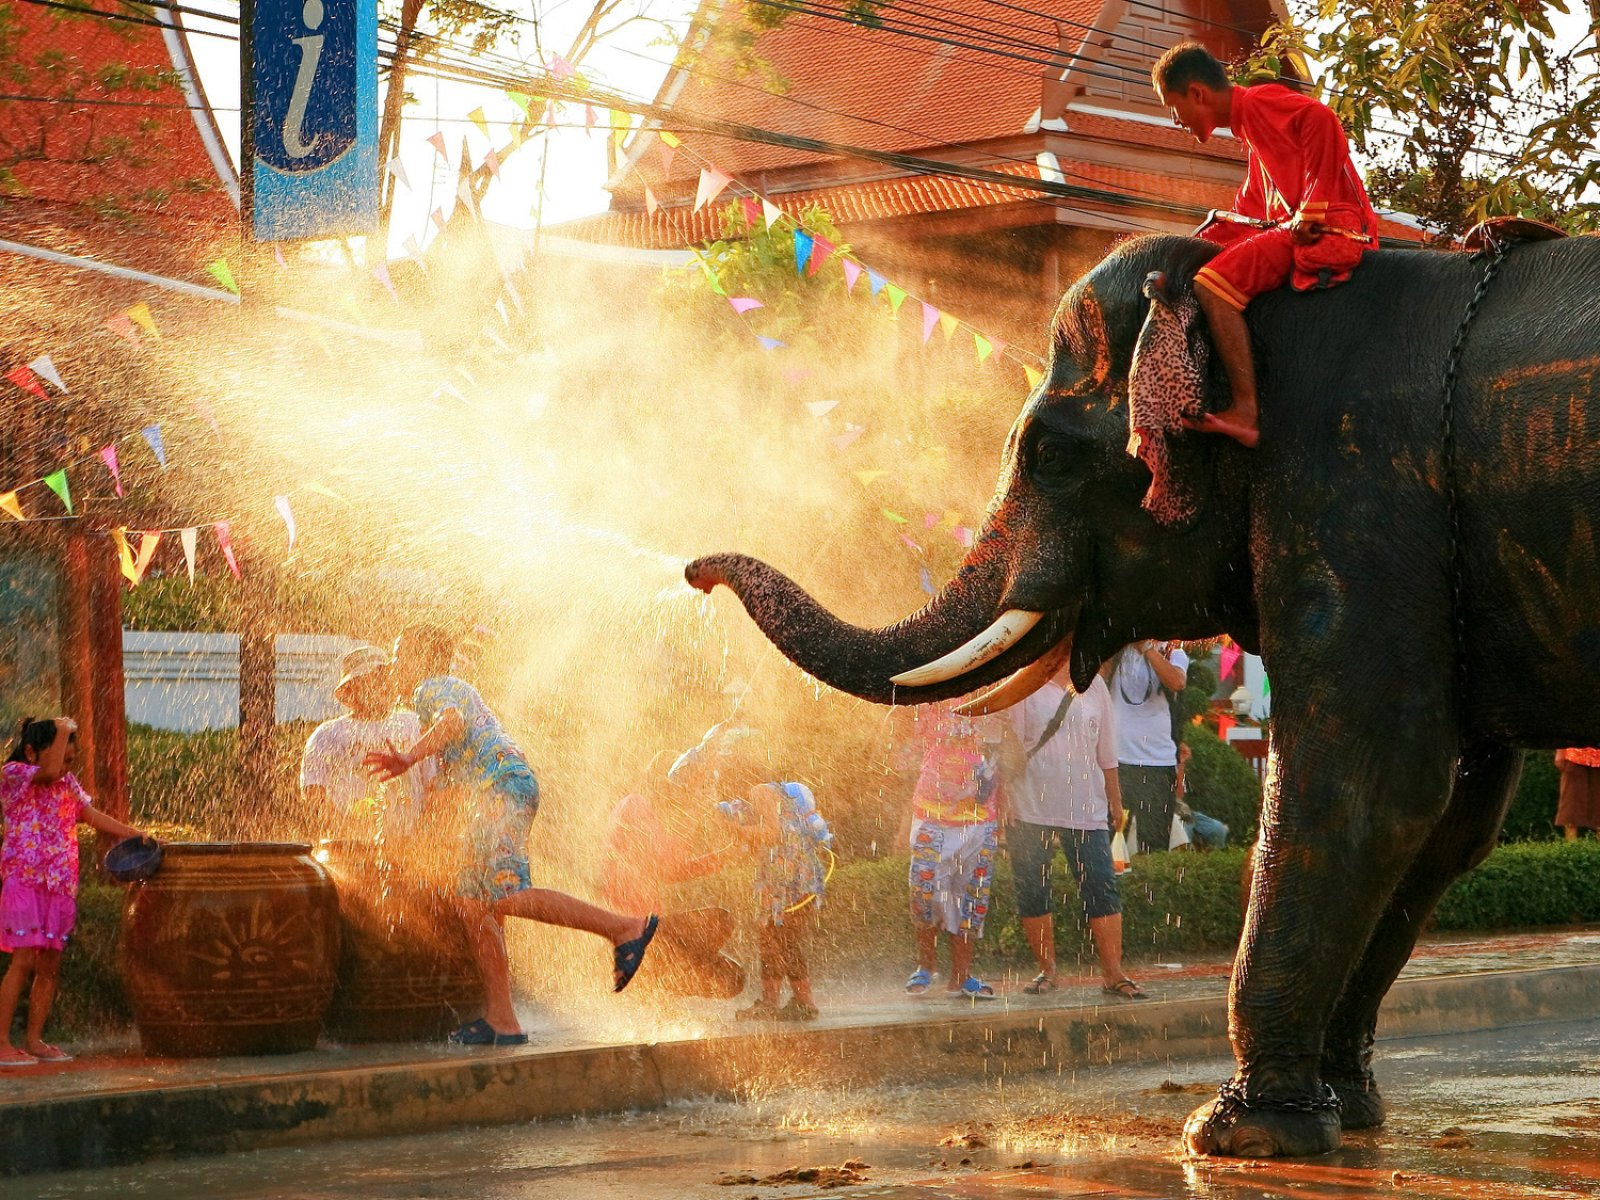 How to celebrate Songkran New Year in Phuket